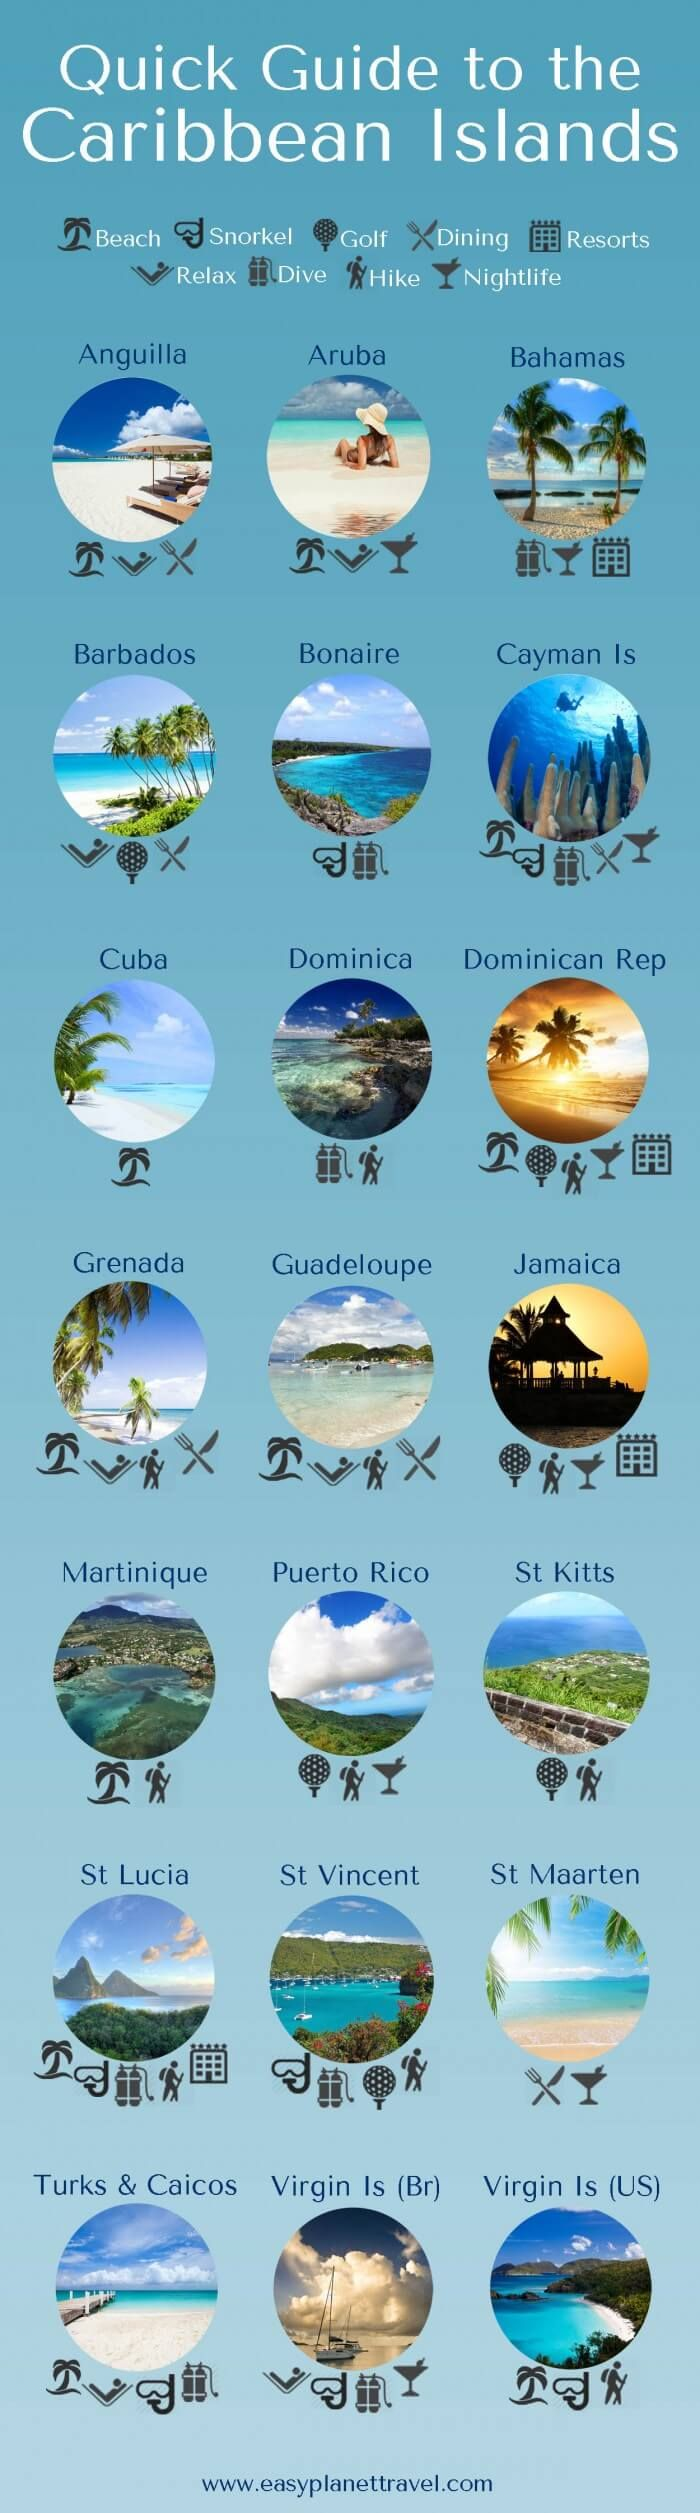 Quick Travel Guide for the #Caribbean - If you are not sure which is the best Caribbean Island your next best Family #Beach Vacation - check this out